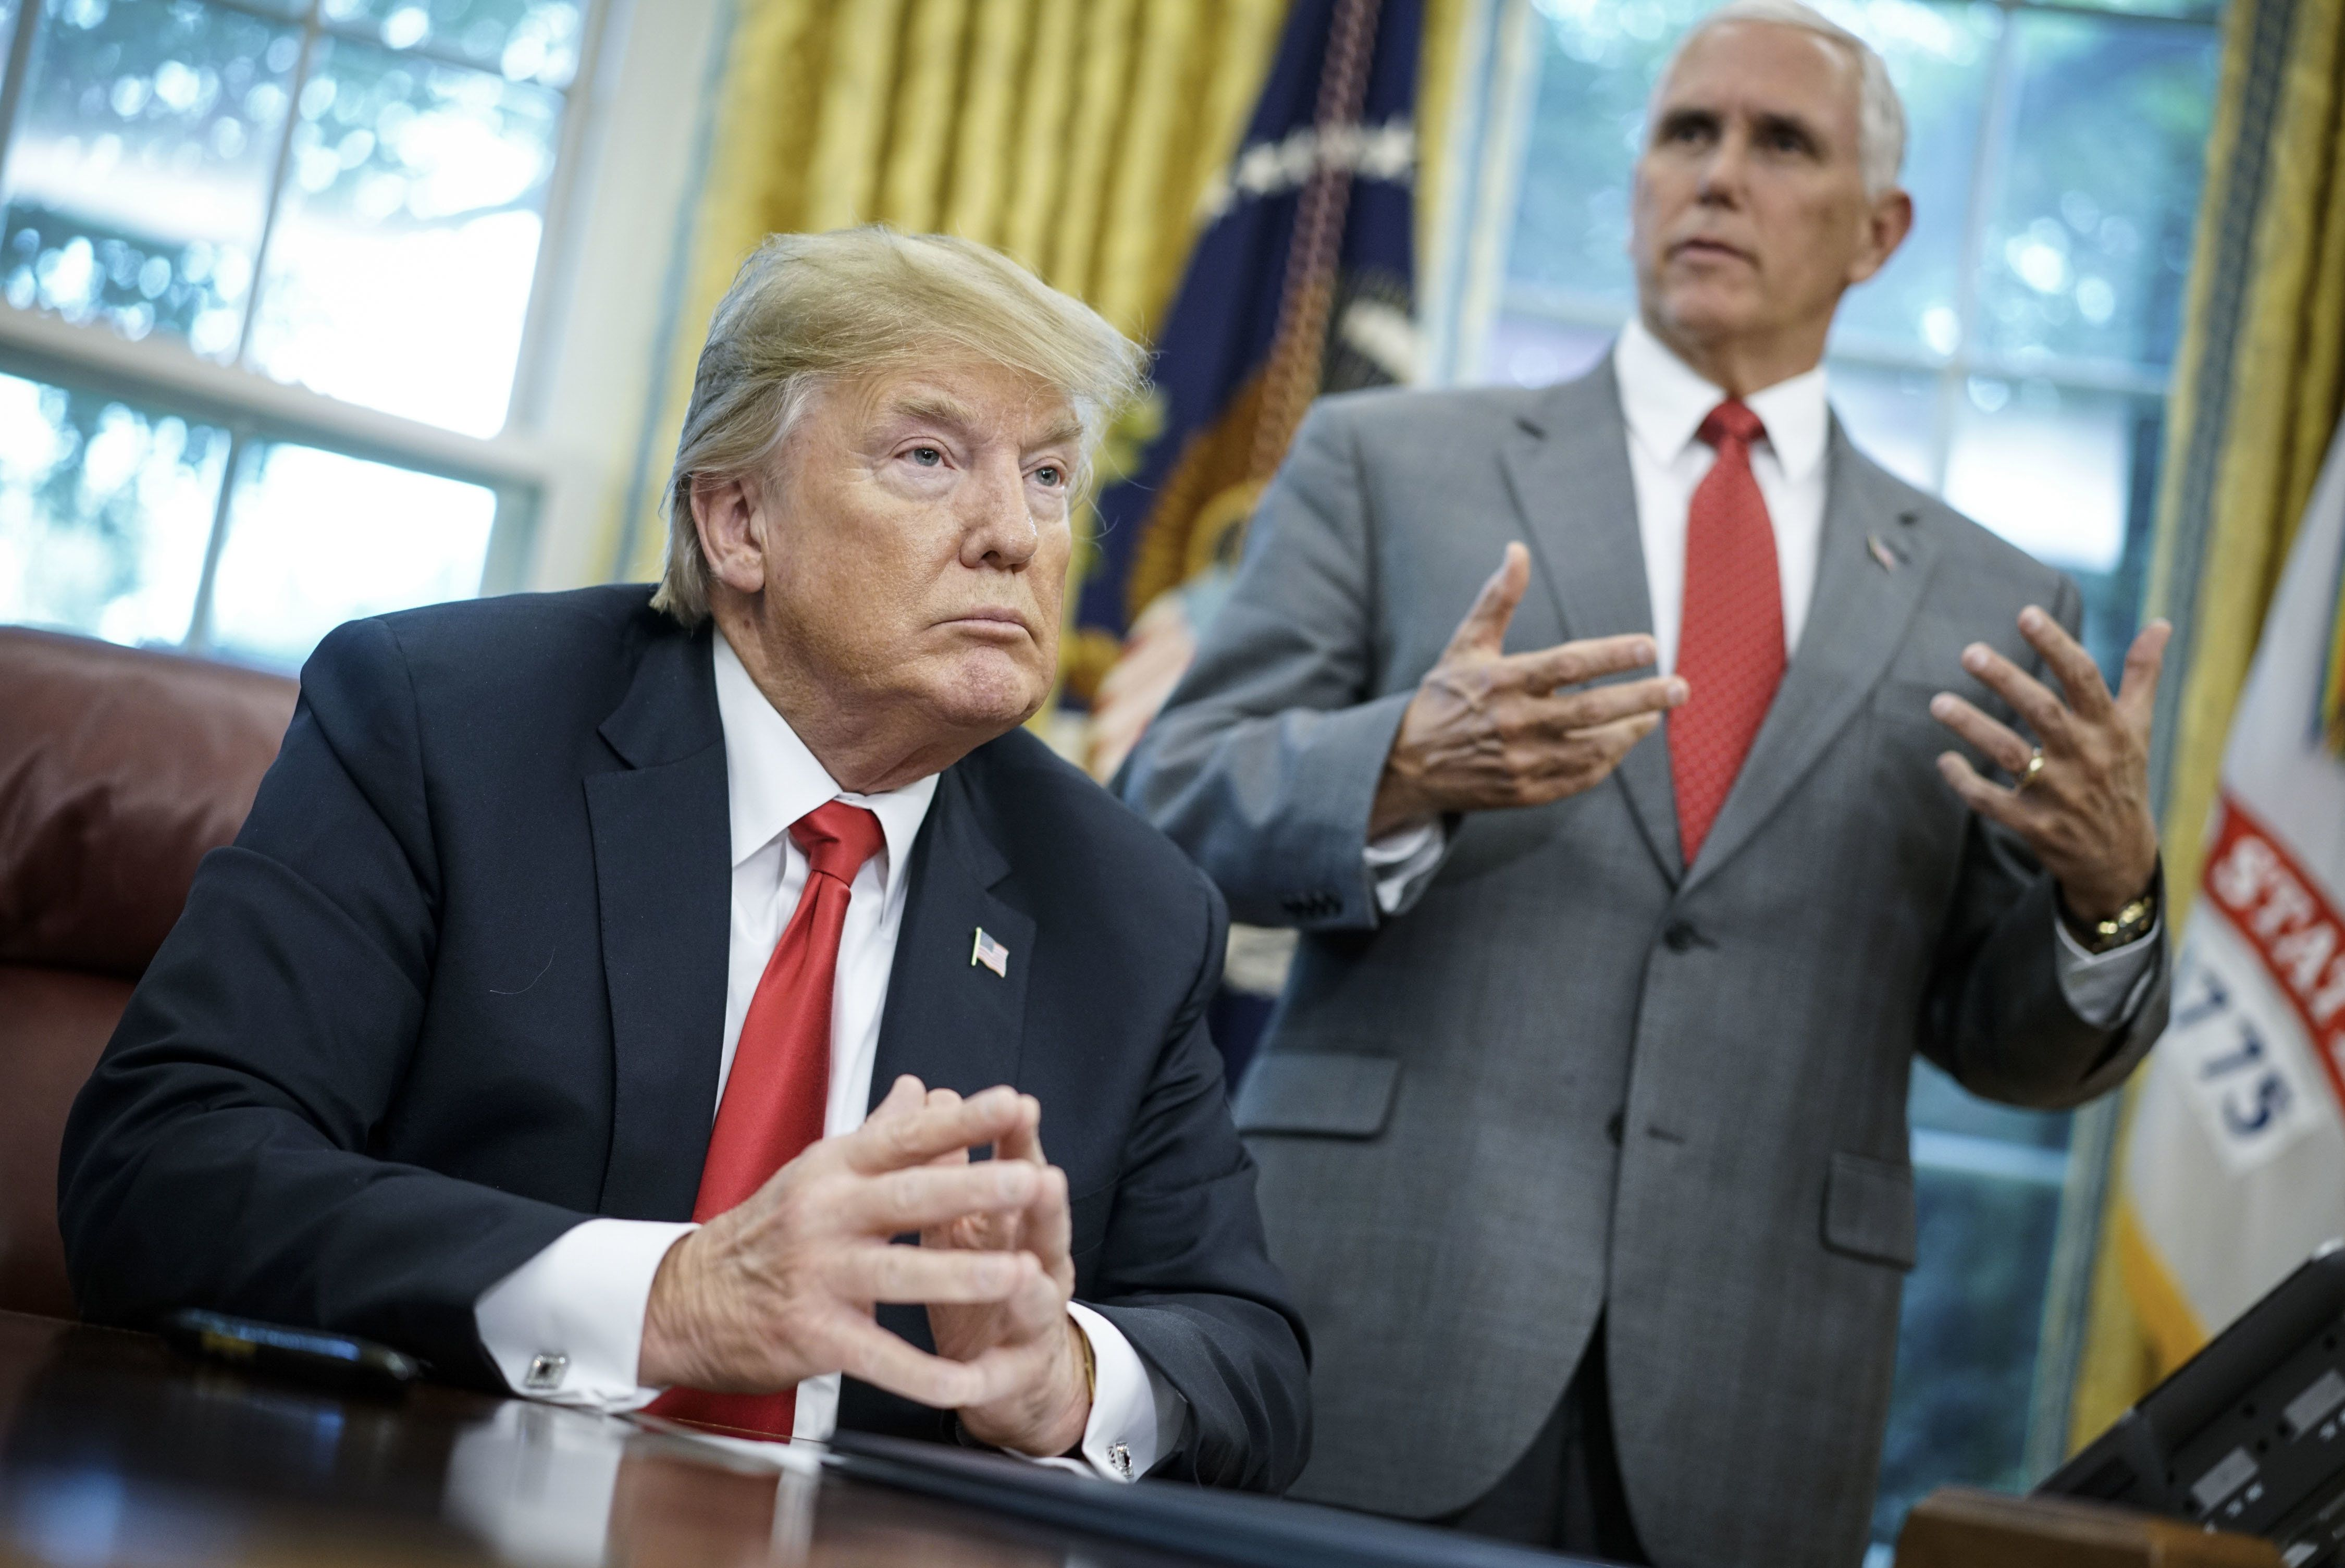 US Vice President Mike Pence speaks as US President Donald Trump looks on before signing an executive order on immigration in the Oval Office of the White House on June 20, 2018 in Washington, DC. - US President Donald Trump on Wednesday signed an executive order aimed at putting an end to the controversial separation of migrant families at the border, reversing a harsh practice that had earned international scorn.'It's about keeping families together,' Trump said at the signing ceremony. 'I did not like the sight of families being separated,' he added. (Photo by Mandel Ngan / AFP)        (Photo credit should read MANDEL NGAN/AFP/Getty Images)